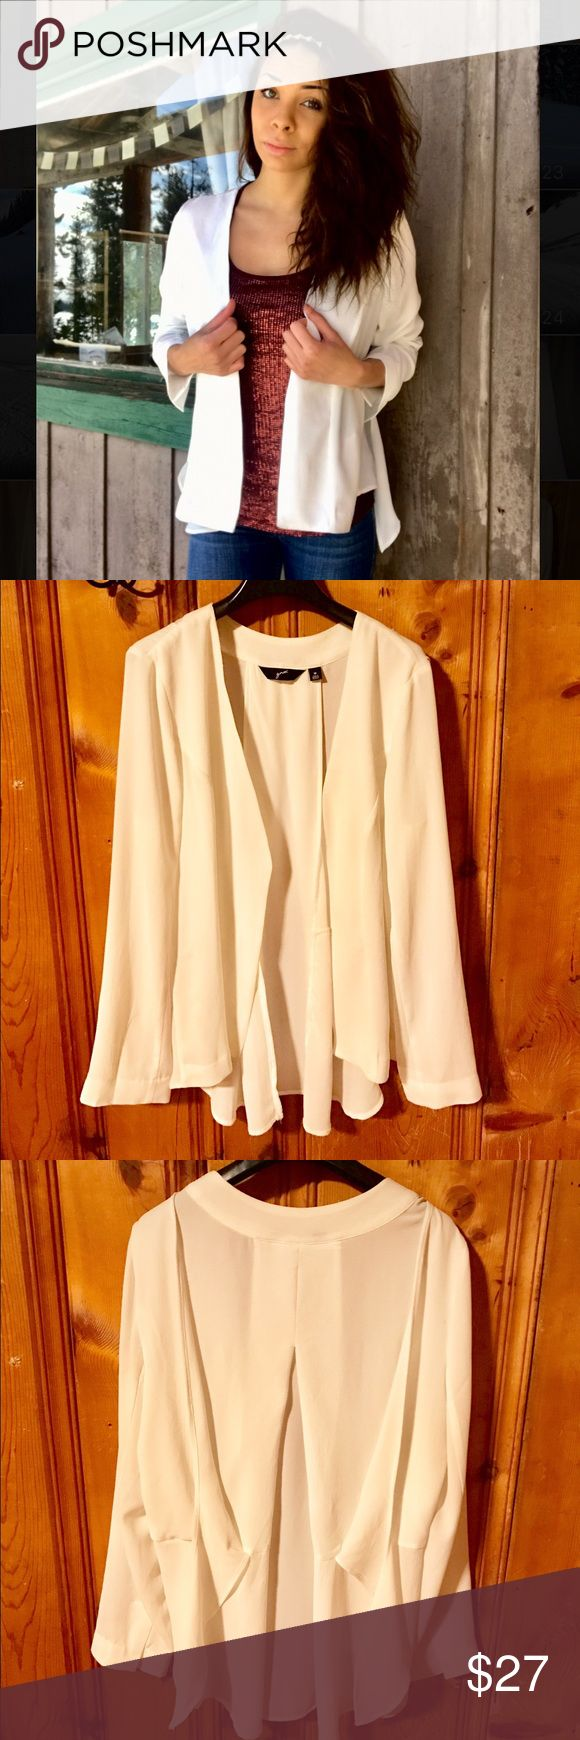 GNW White Flowy Blazer GNW White Blazer. A perfect elegant piece to add to any outfit. This has only been worn one time. Prime condition. Reasonable offers are graciously considered GNW Jackets & Coats Blazers